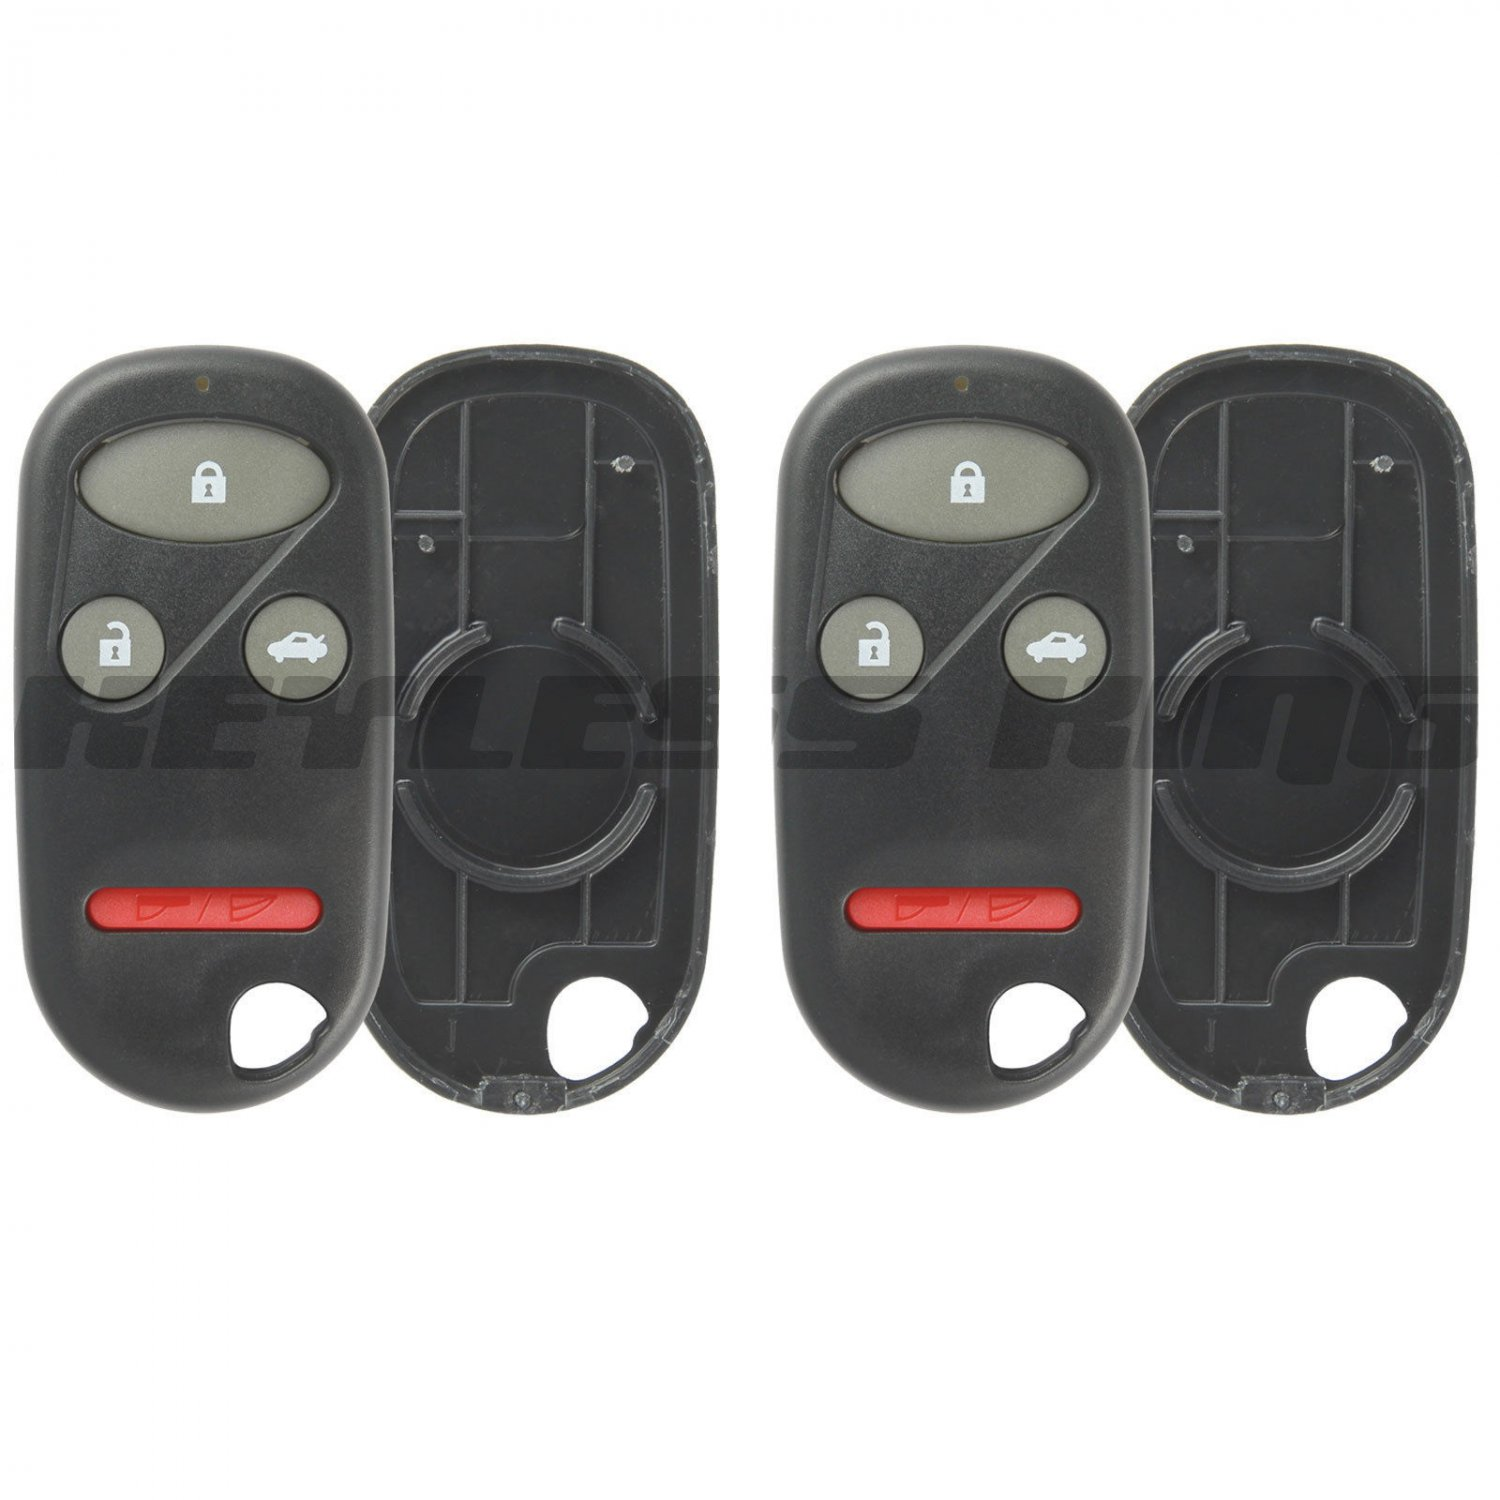 2 New Replacement Keyless Entry Remote Shell Pad Case Fix Key Fob Clicker Rubber